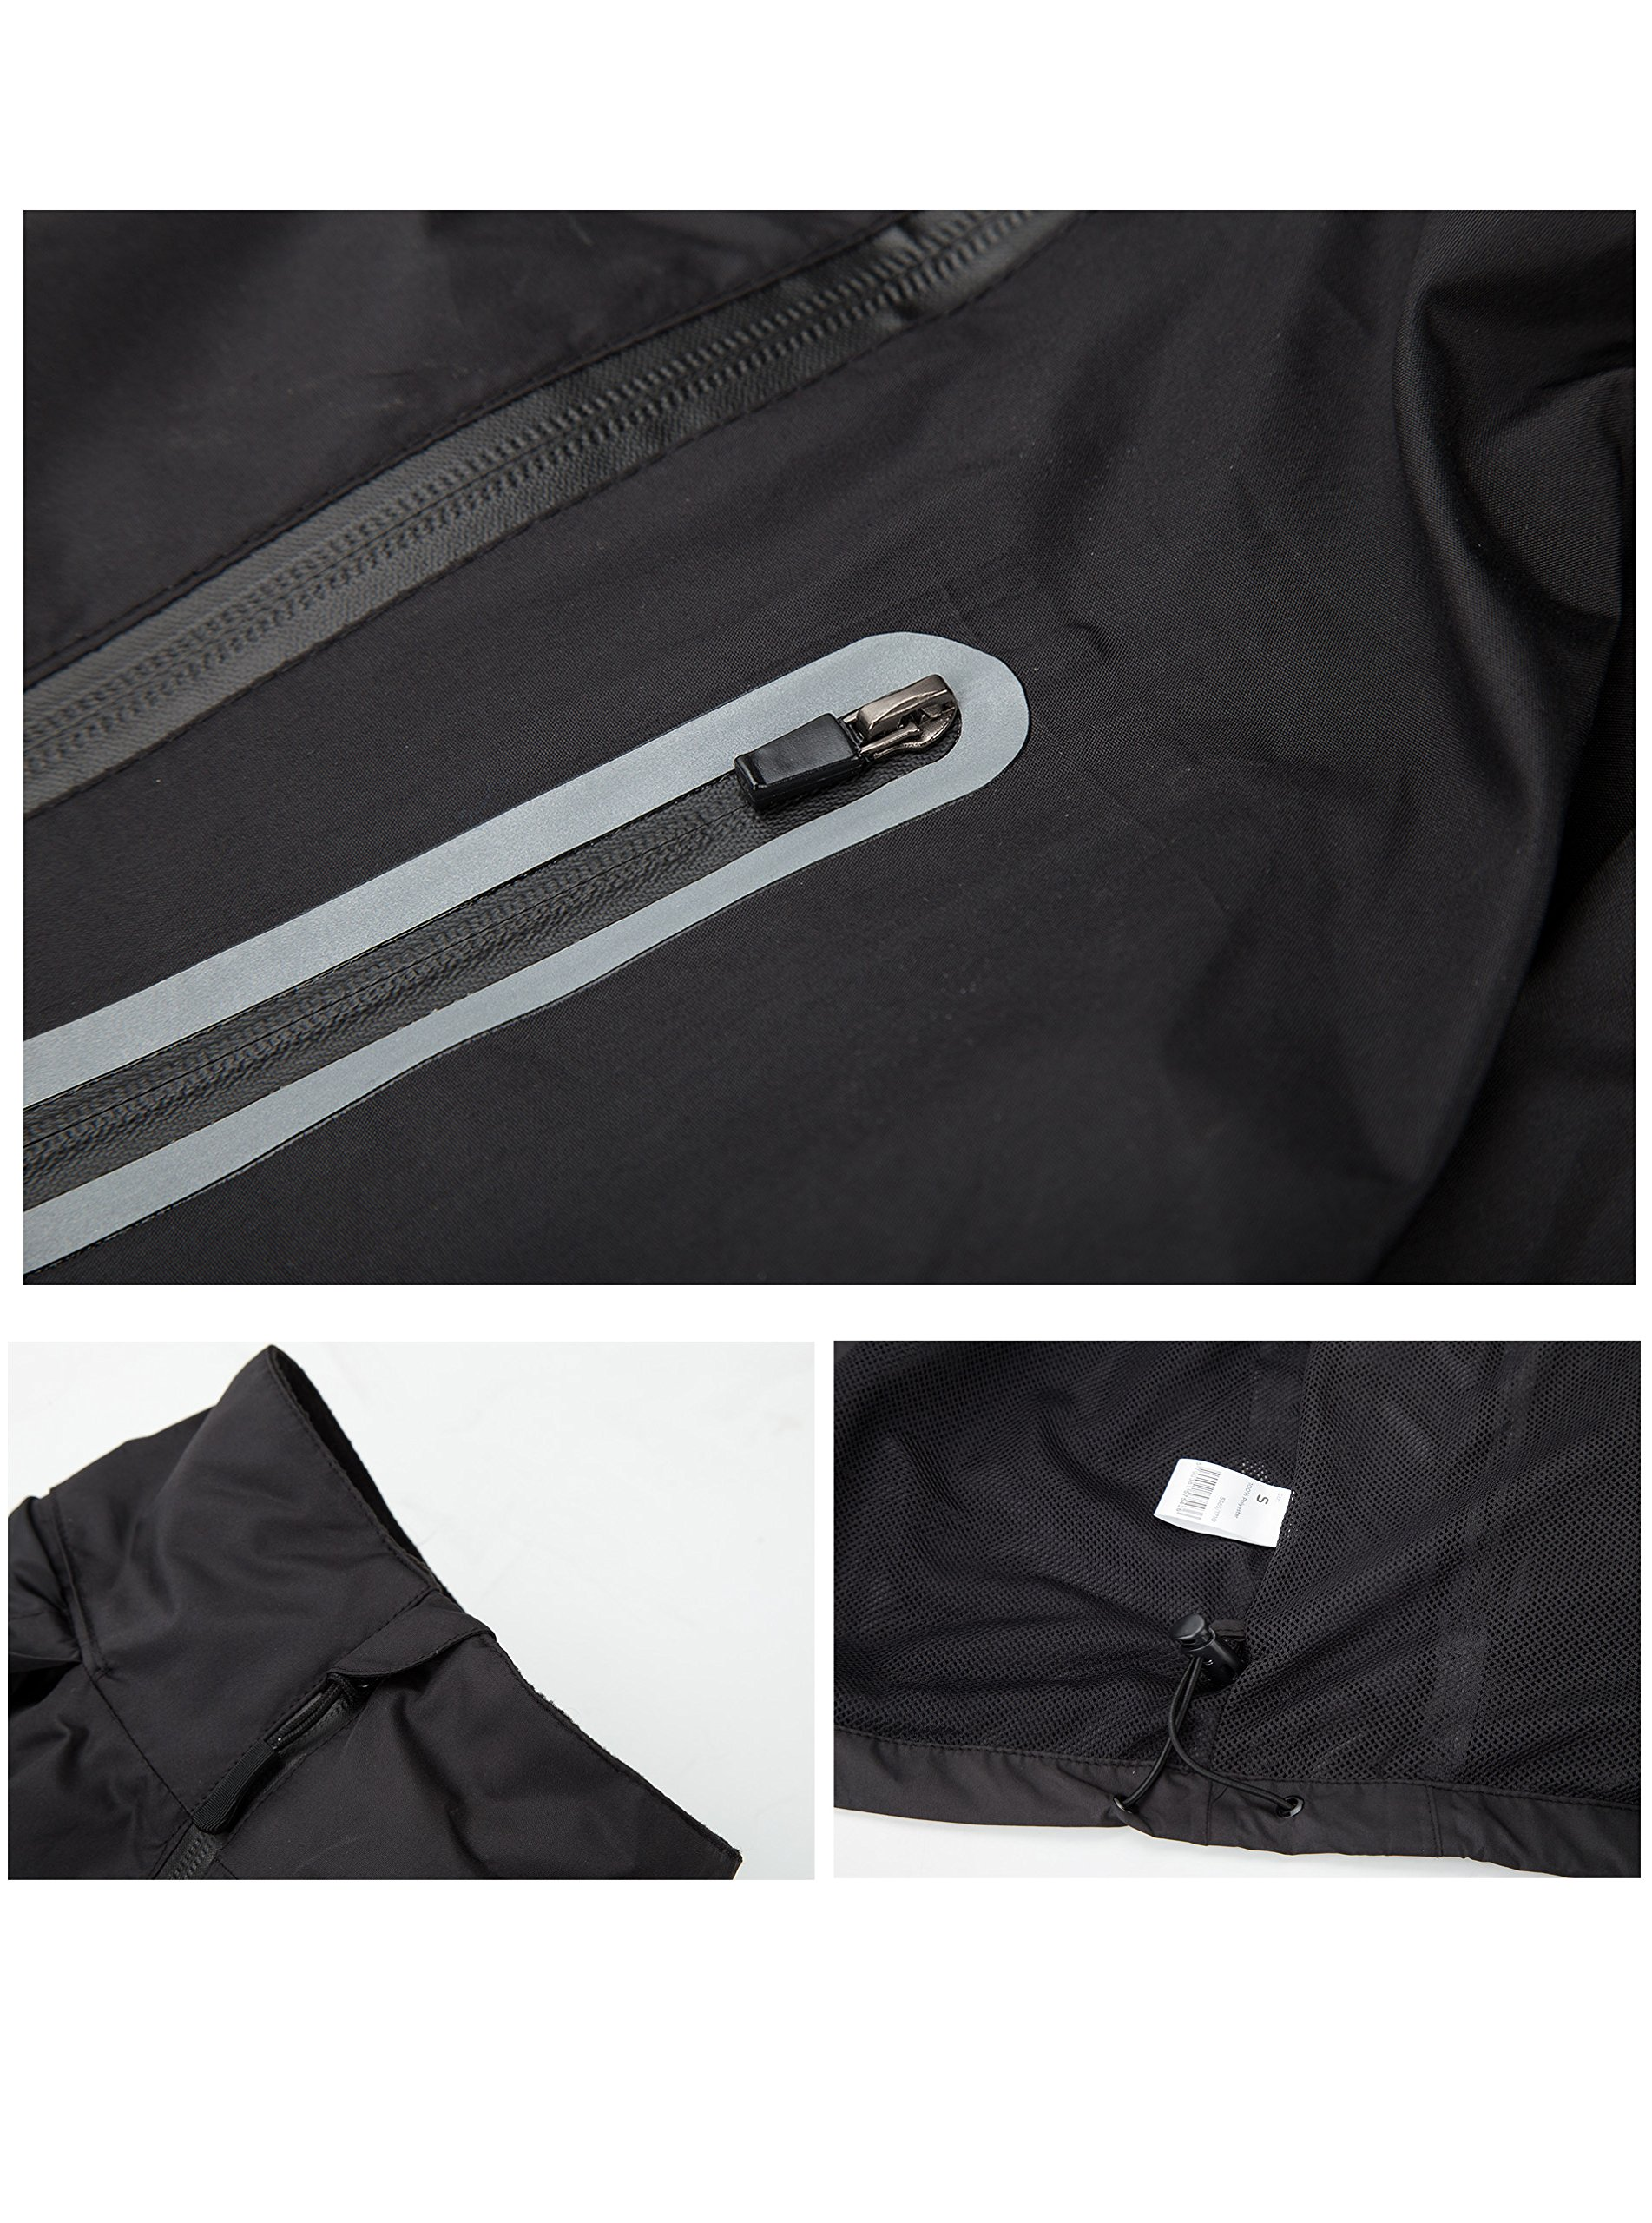 SWISSWELL Hooded Rain Suit for Kids Black Size 10 by SWISSWELL (Image #4)